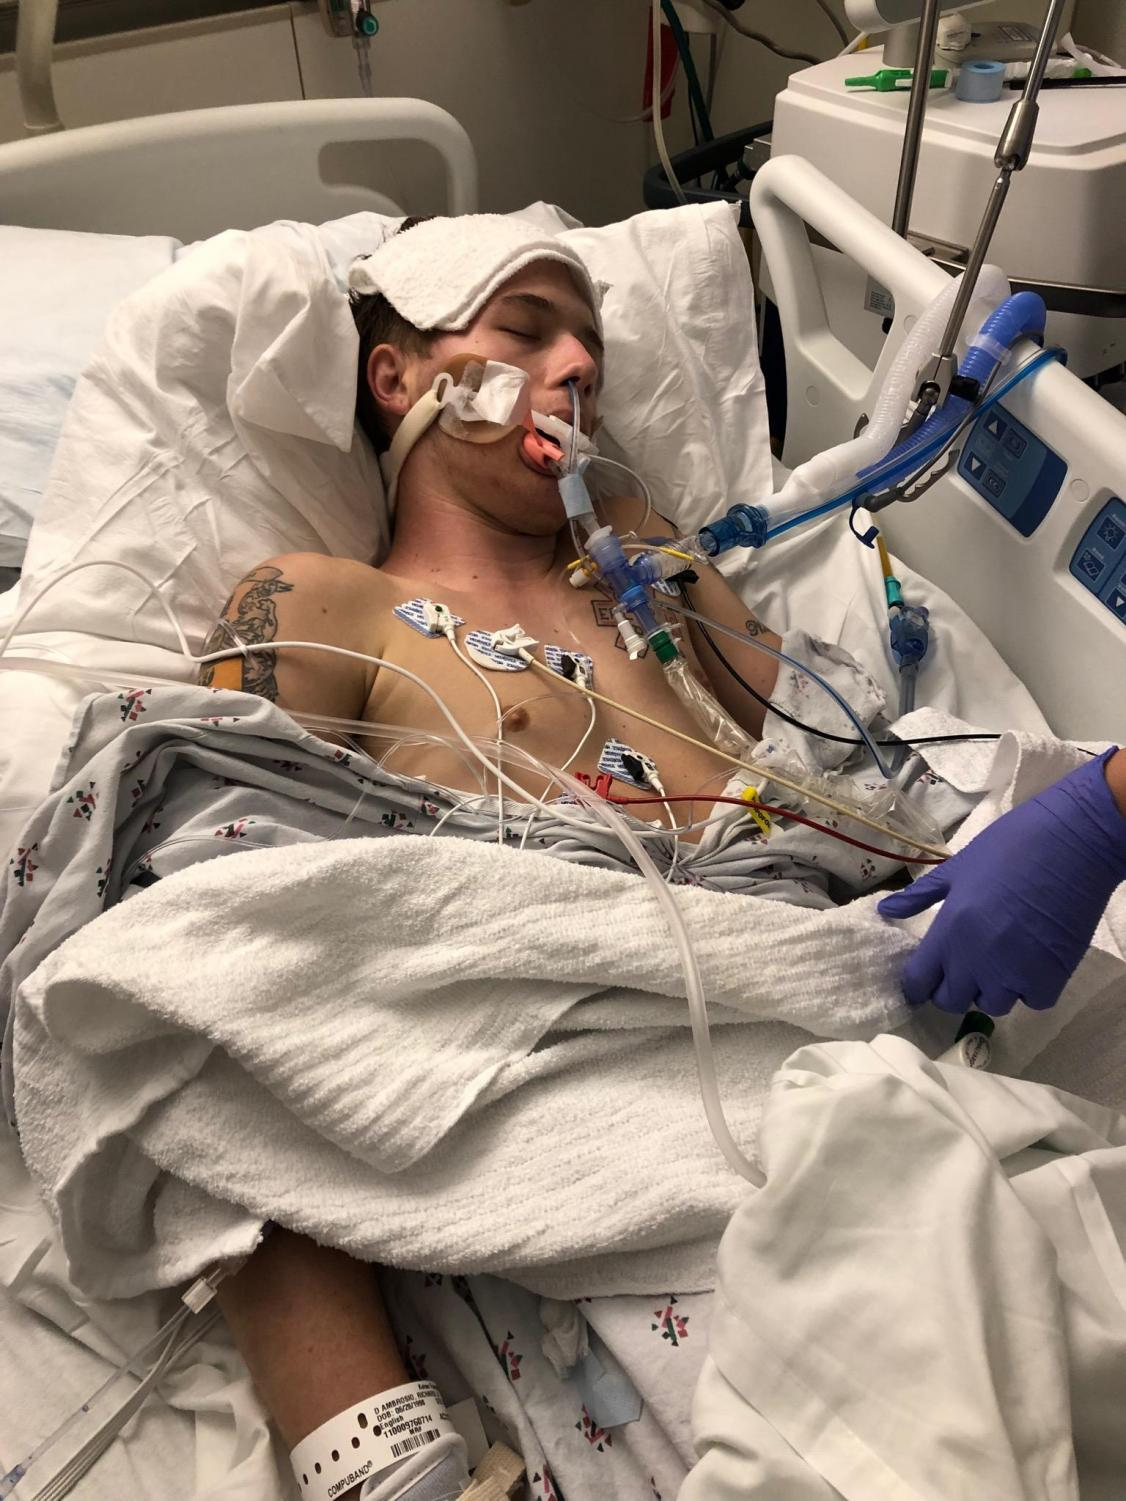 The result of a five-year nicotine addiction that eventually included vaping, 21-year-old Ricky D' Ambrosio was rushed to the hospital earlier this year after his flu-like symptoms gradually worsened. Physicians determined D'Ambrosio's vaping caused his then-critical medical condition.